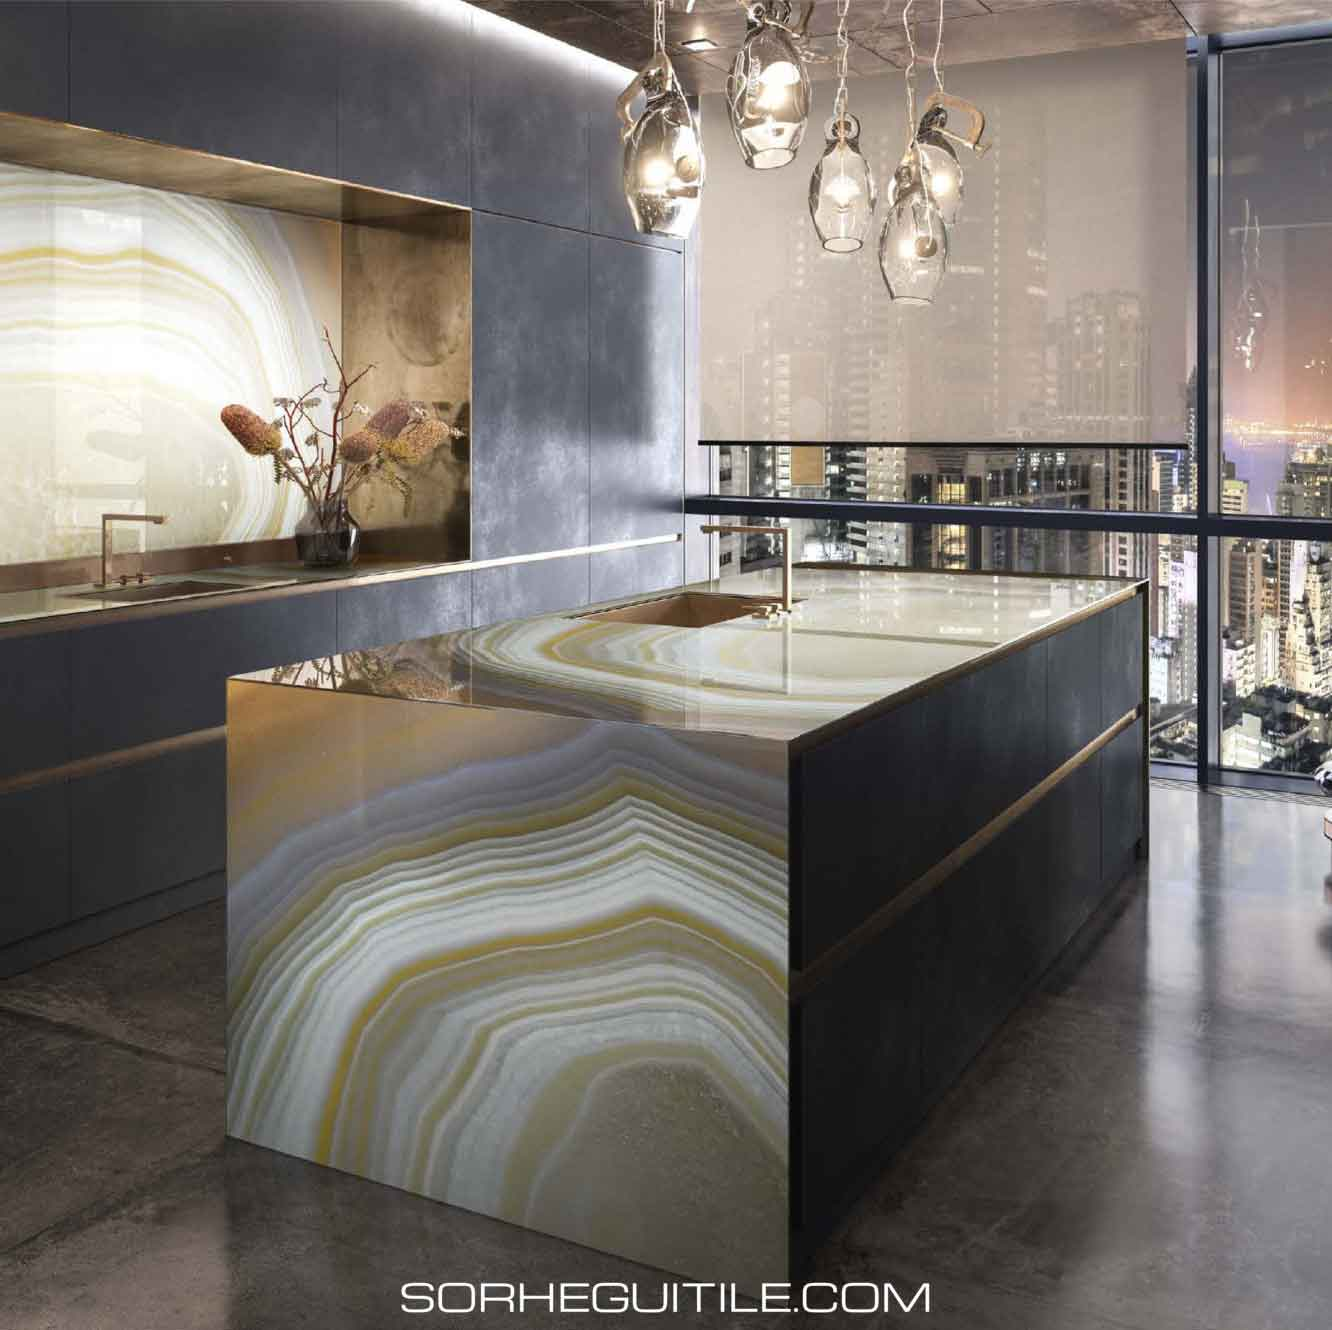 Sicis Vetrite Gem Glass Collection available at Ruben Sorhegui Tile Distributors Southwest Florida's premier tile, stone and mixed mosaics distributor and tile showroom